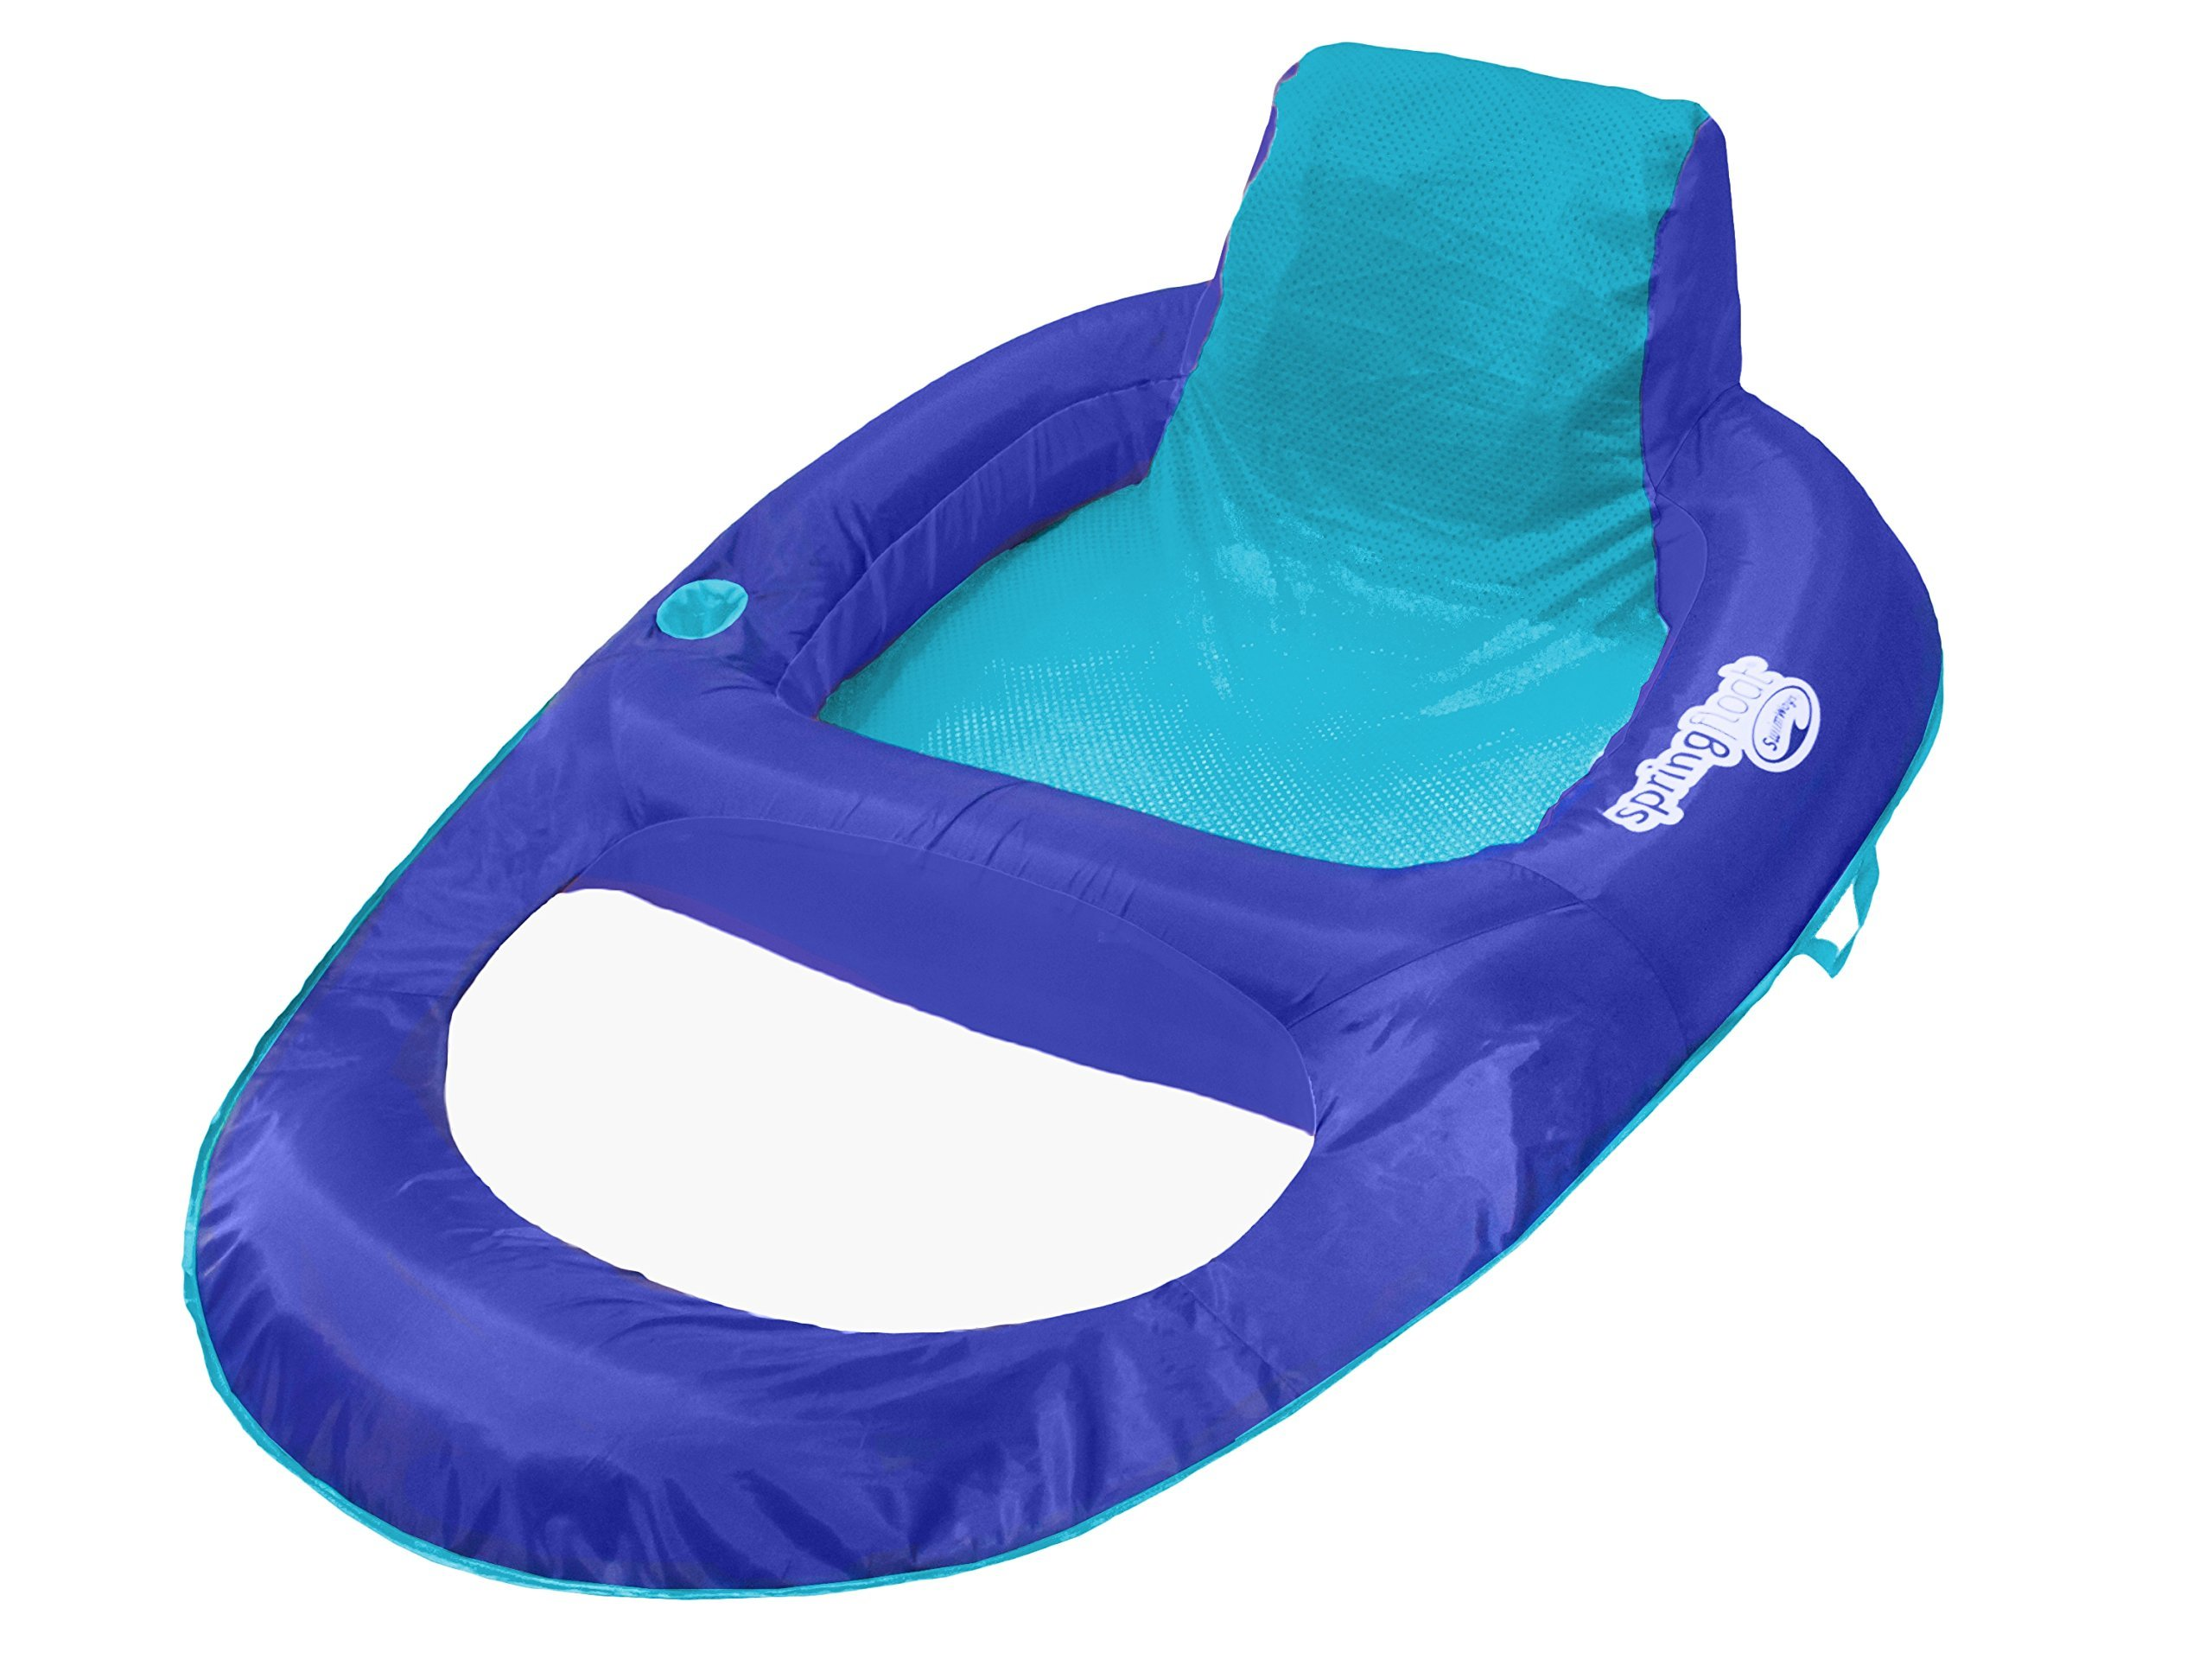 SwimWays Spring Float Recliner XL - Extra Large Swim Lounger for Pool or Lake by SwimWays